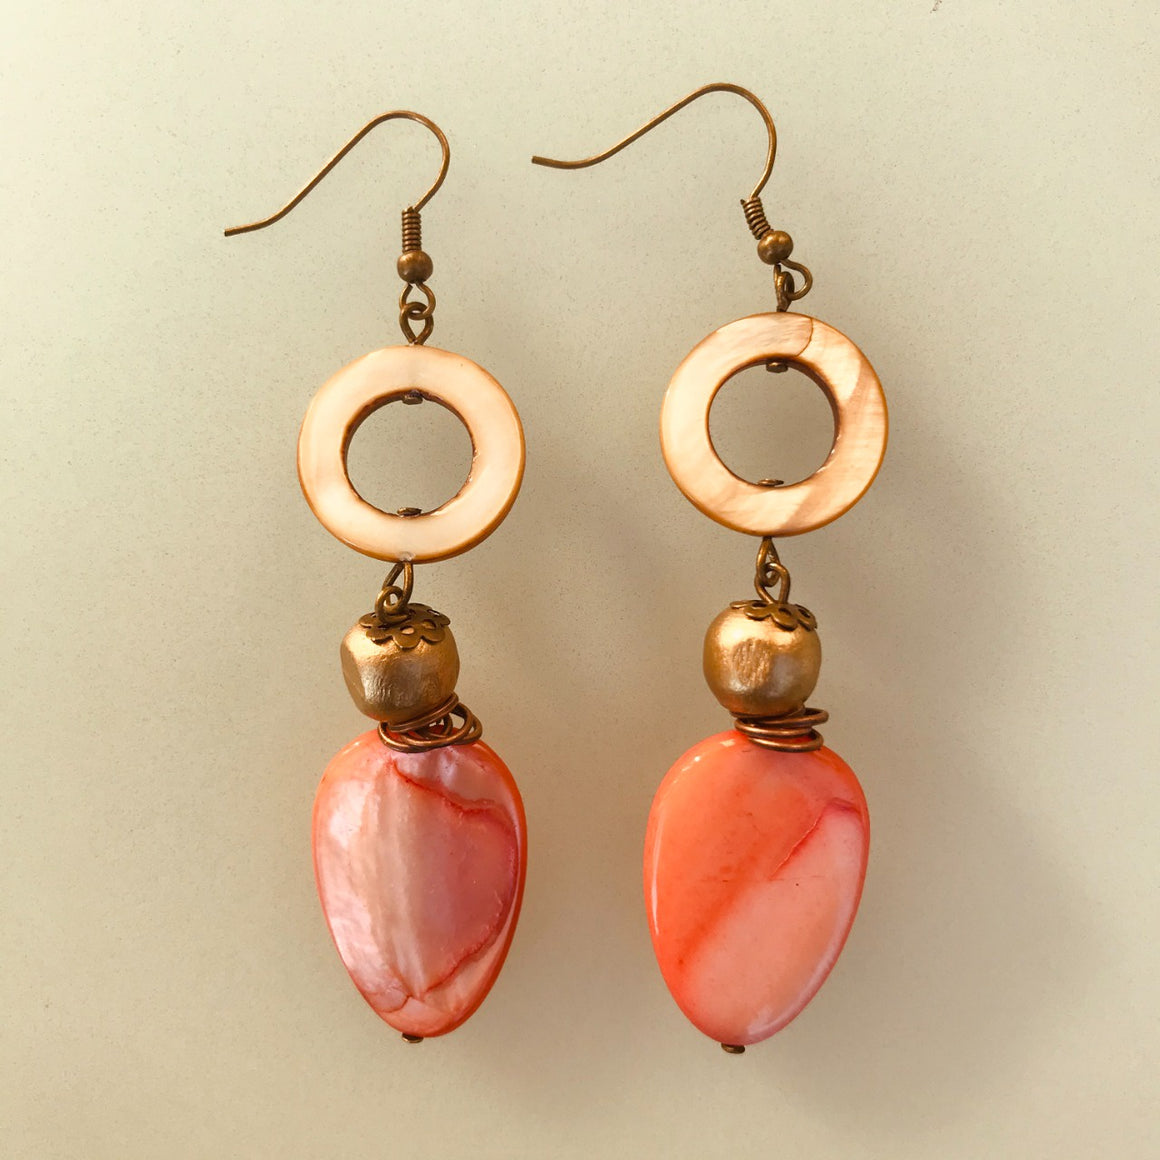 Seipati Earrings